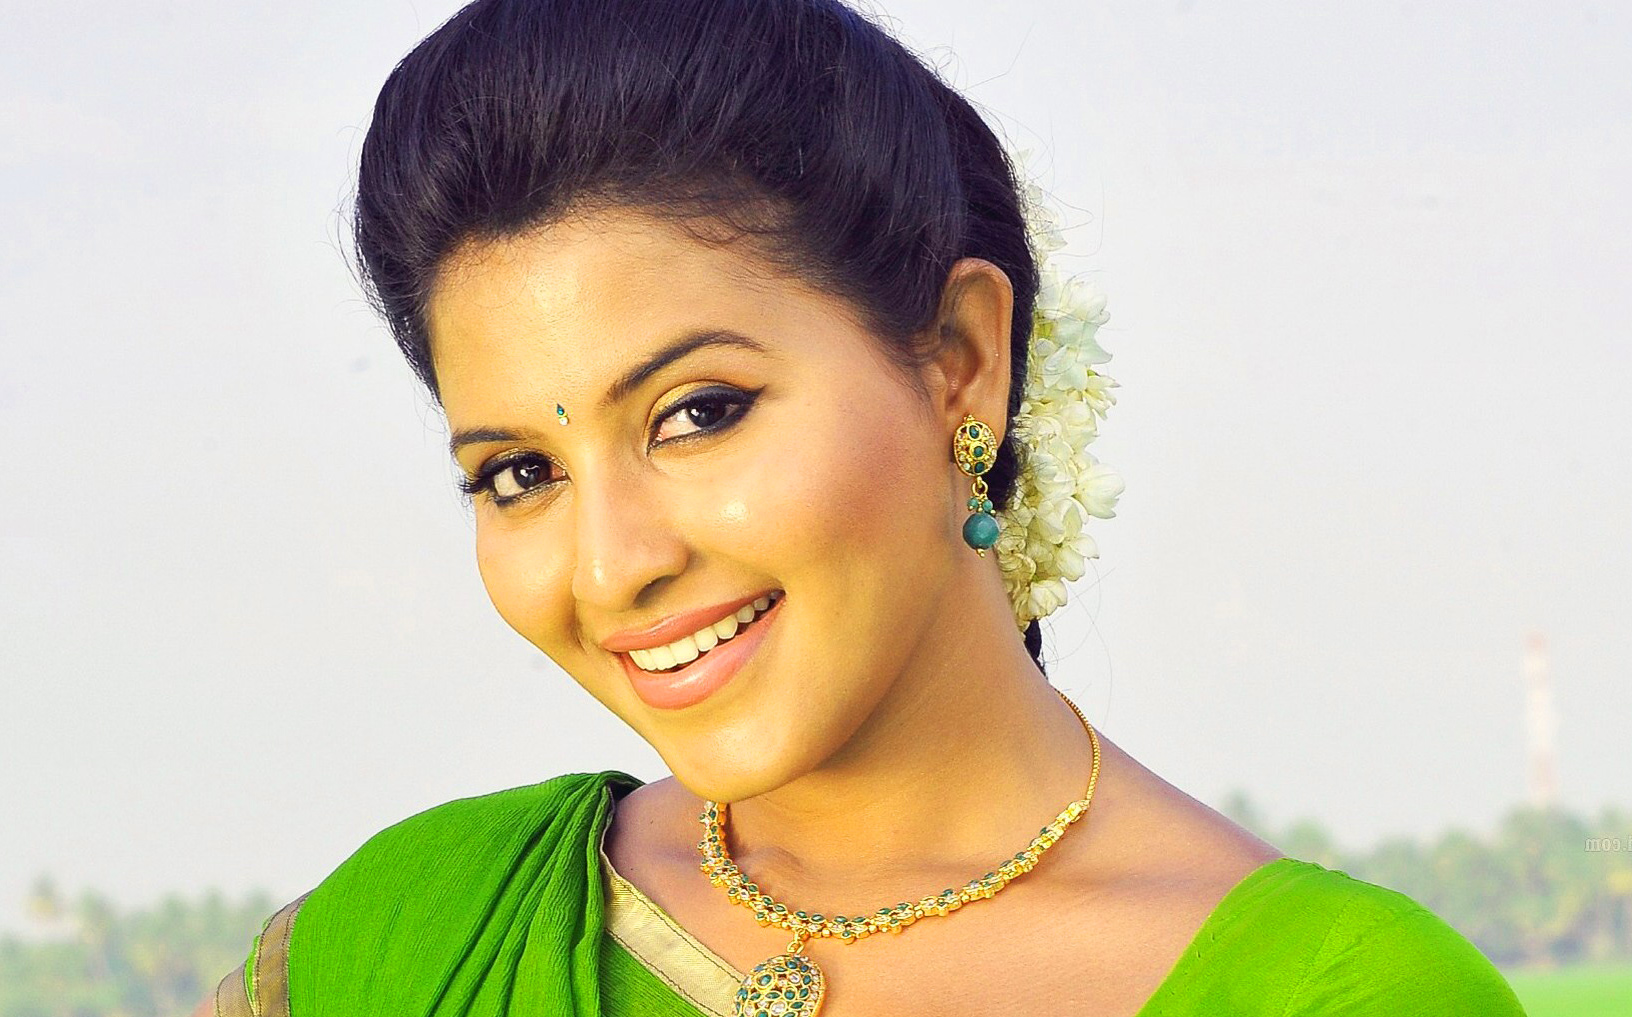 Anjali Images Wallpaper Pic for Whatsapp